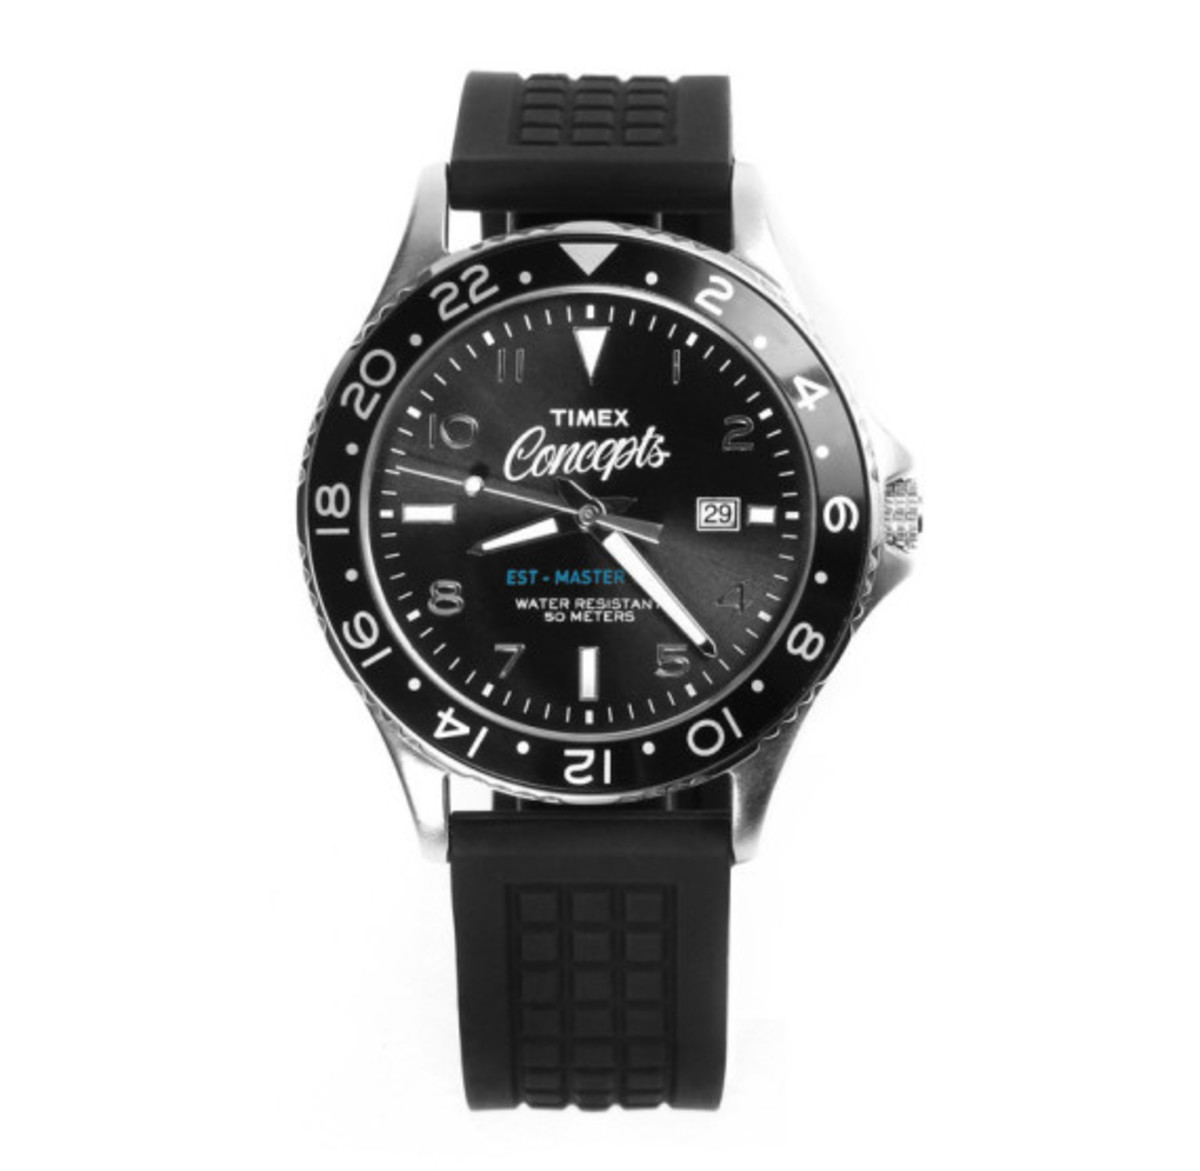 concepts-timex-watch-06